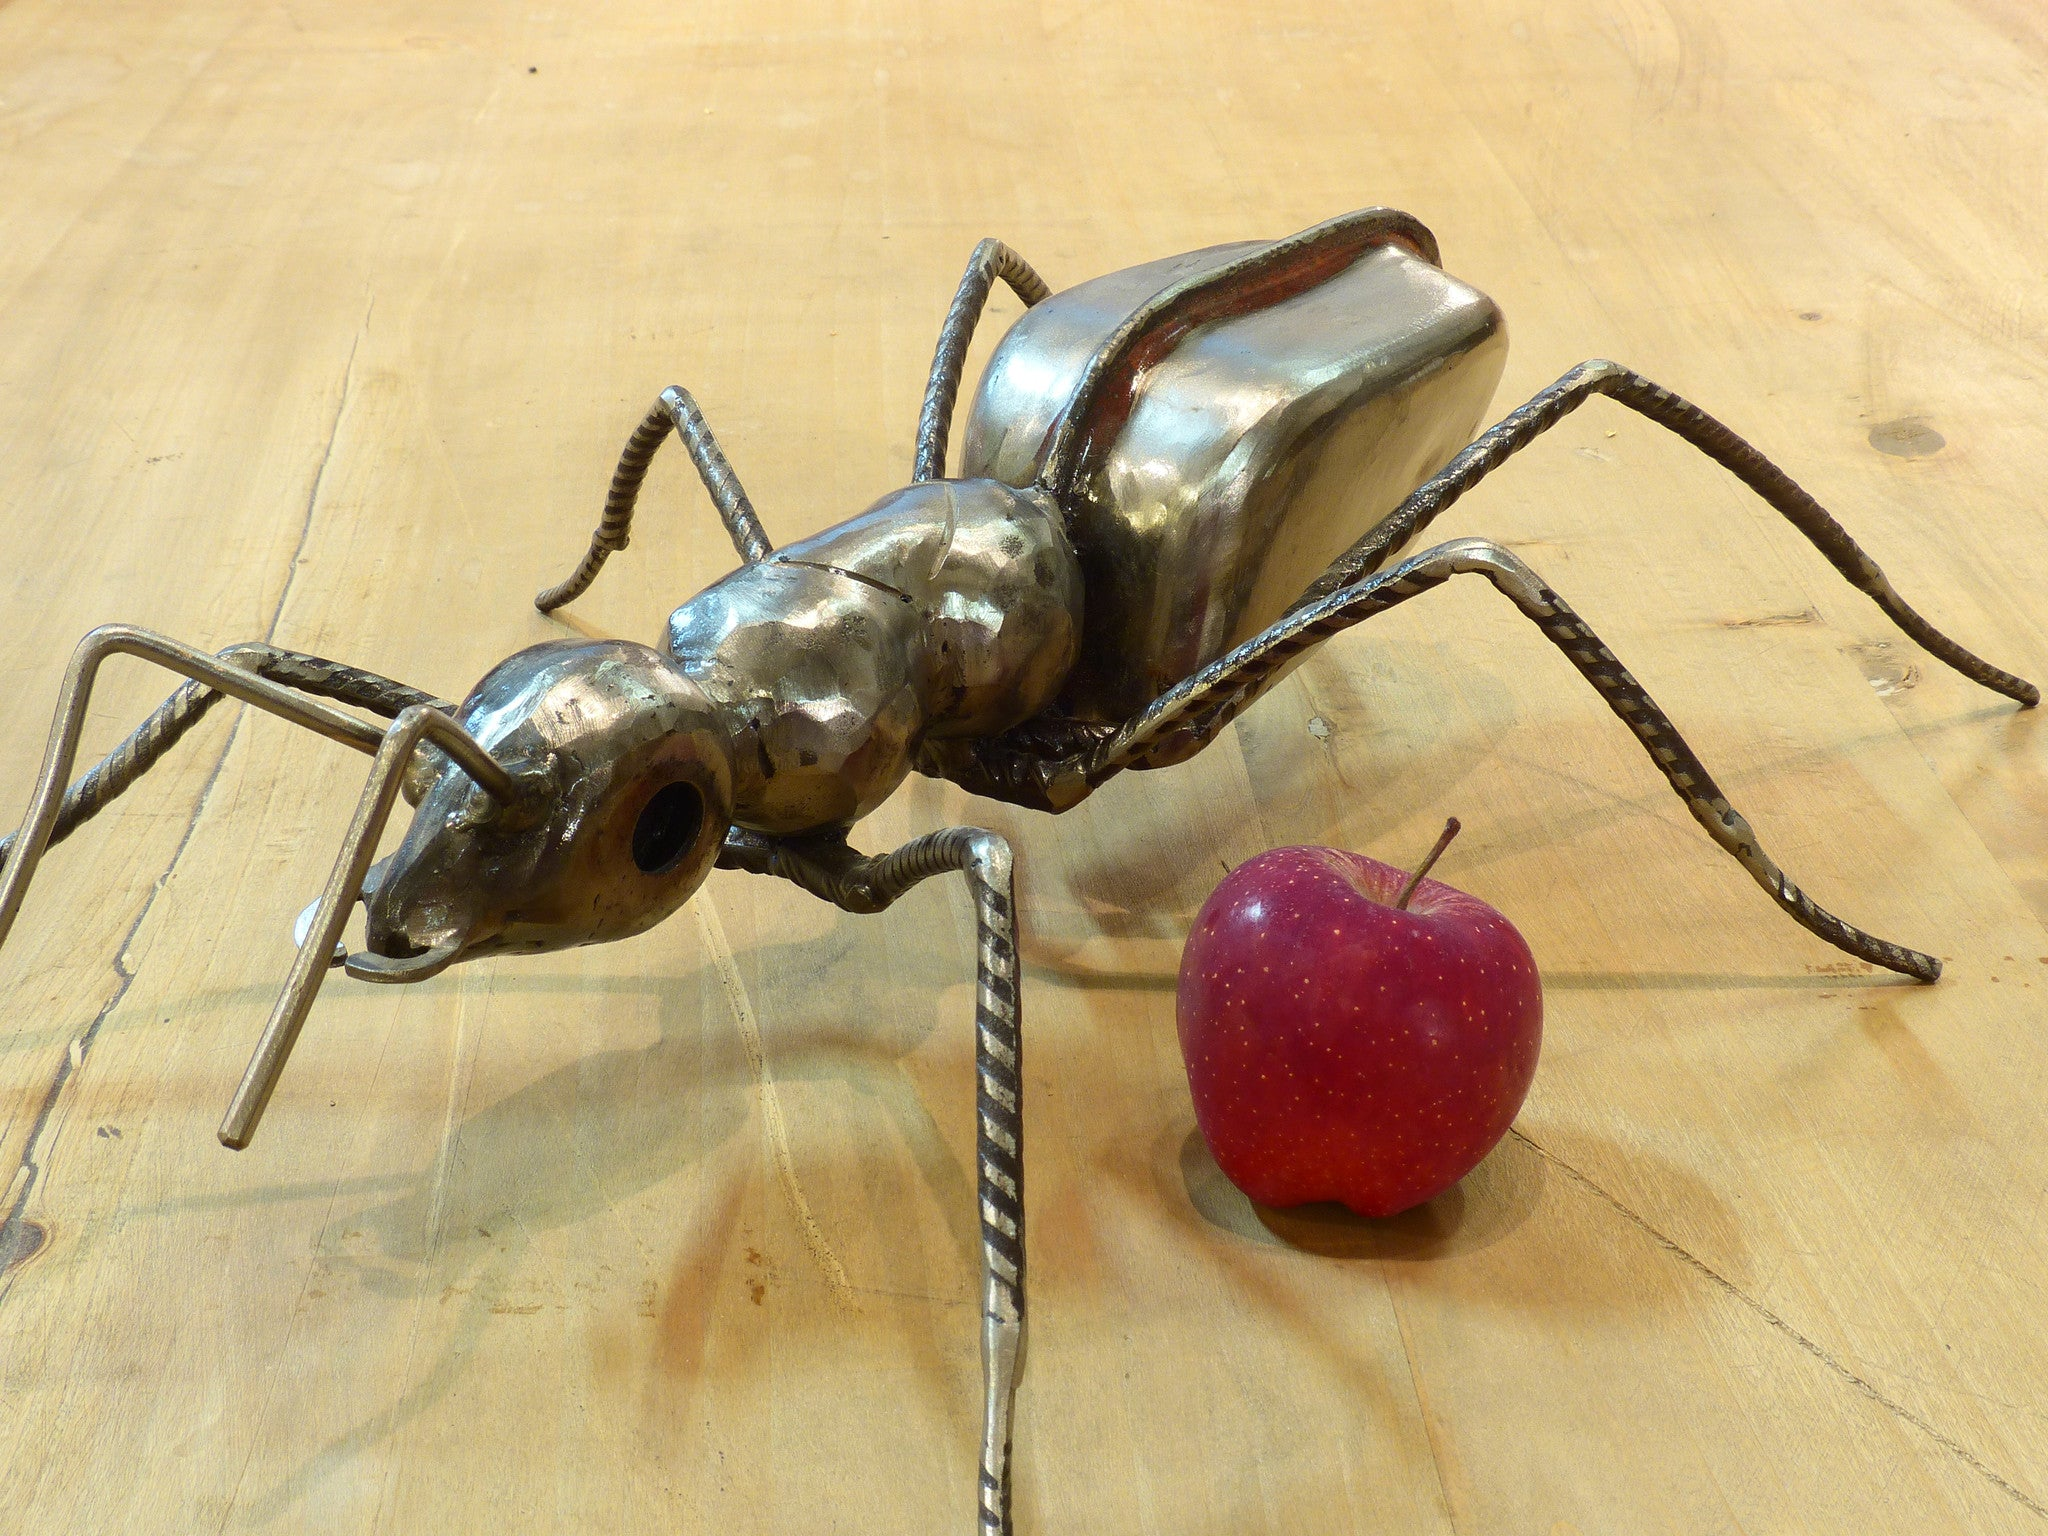 Sculpture of an ant from salvaged materials by Barral